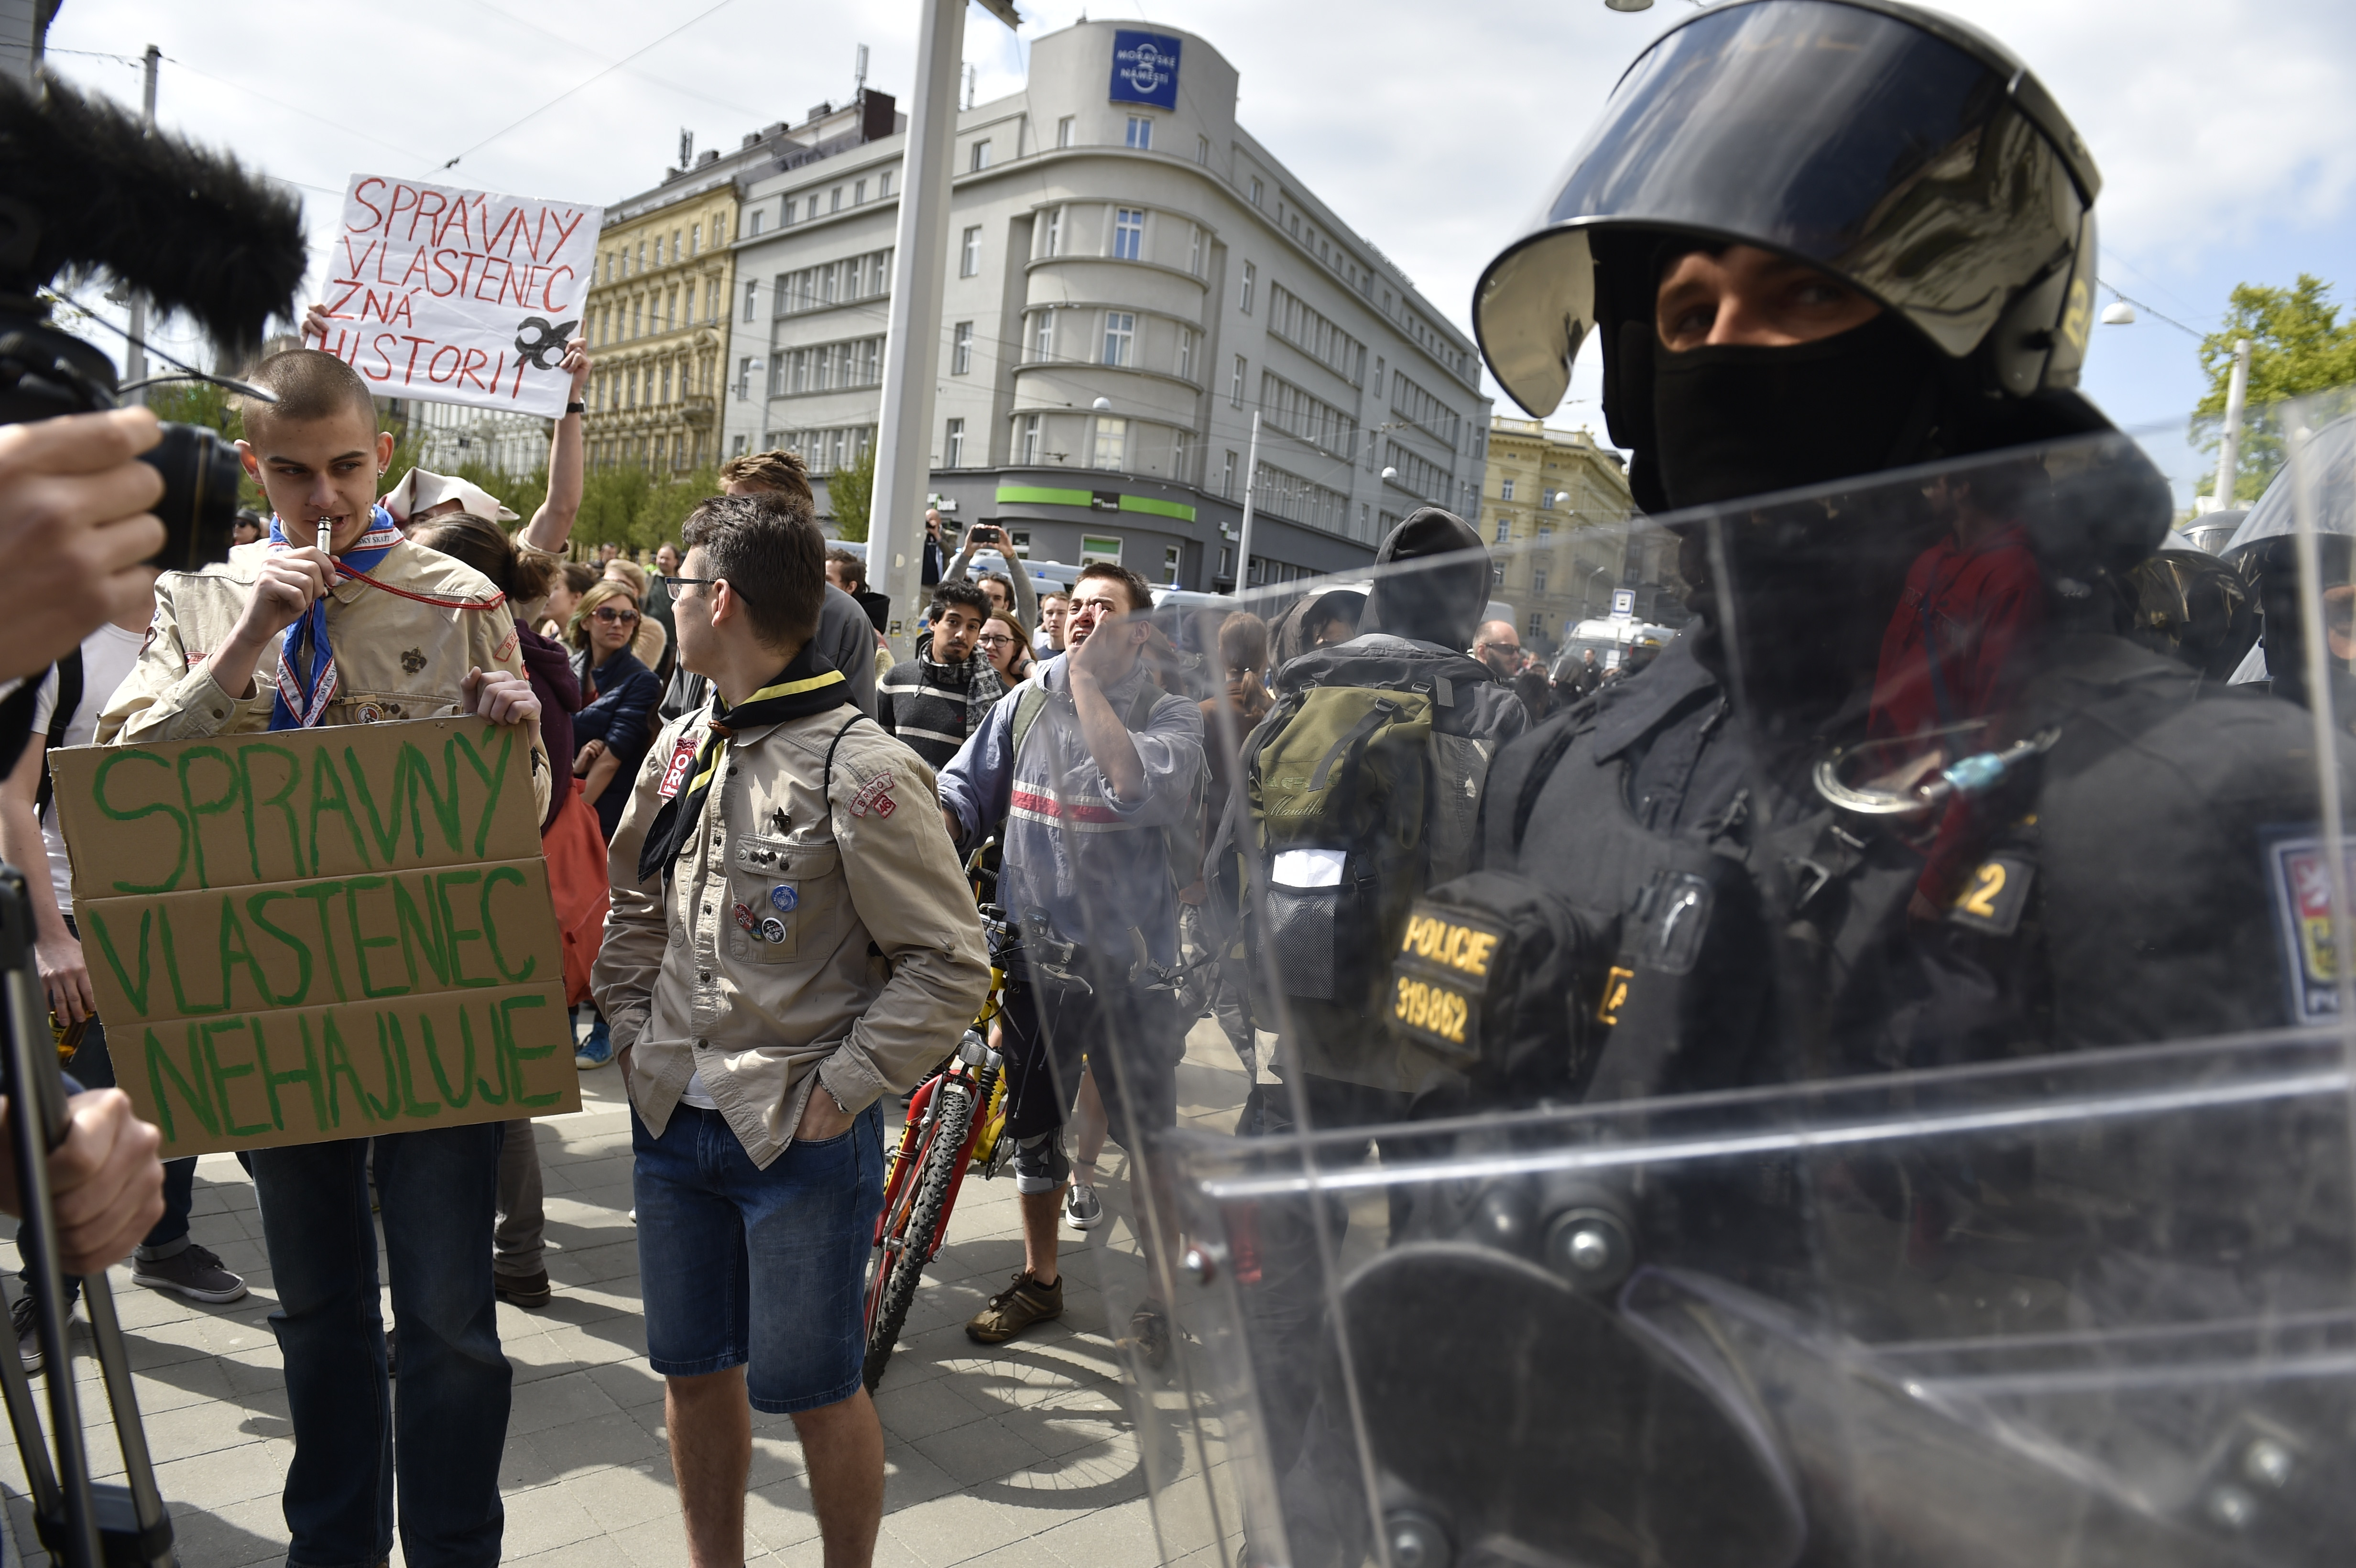 Ultra-right supporters clashed with their opponents or anti-fascists during a May Day rally in the centre of Brno, the second largest Czech town, Czech Republic, May 1, 2017.